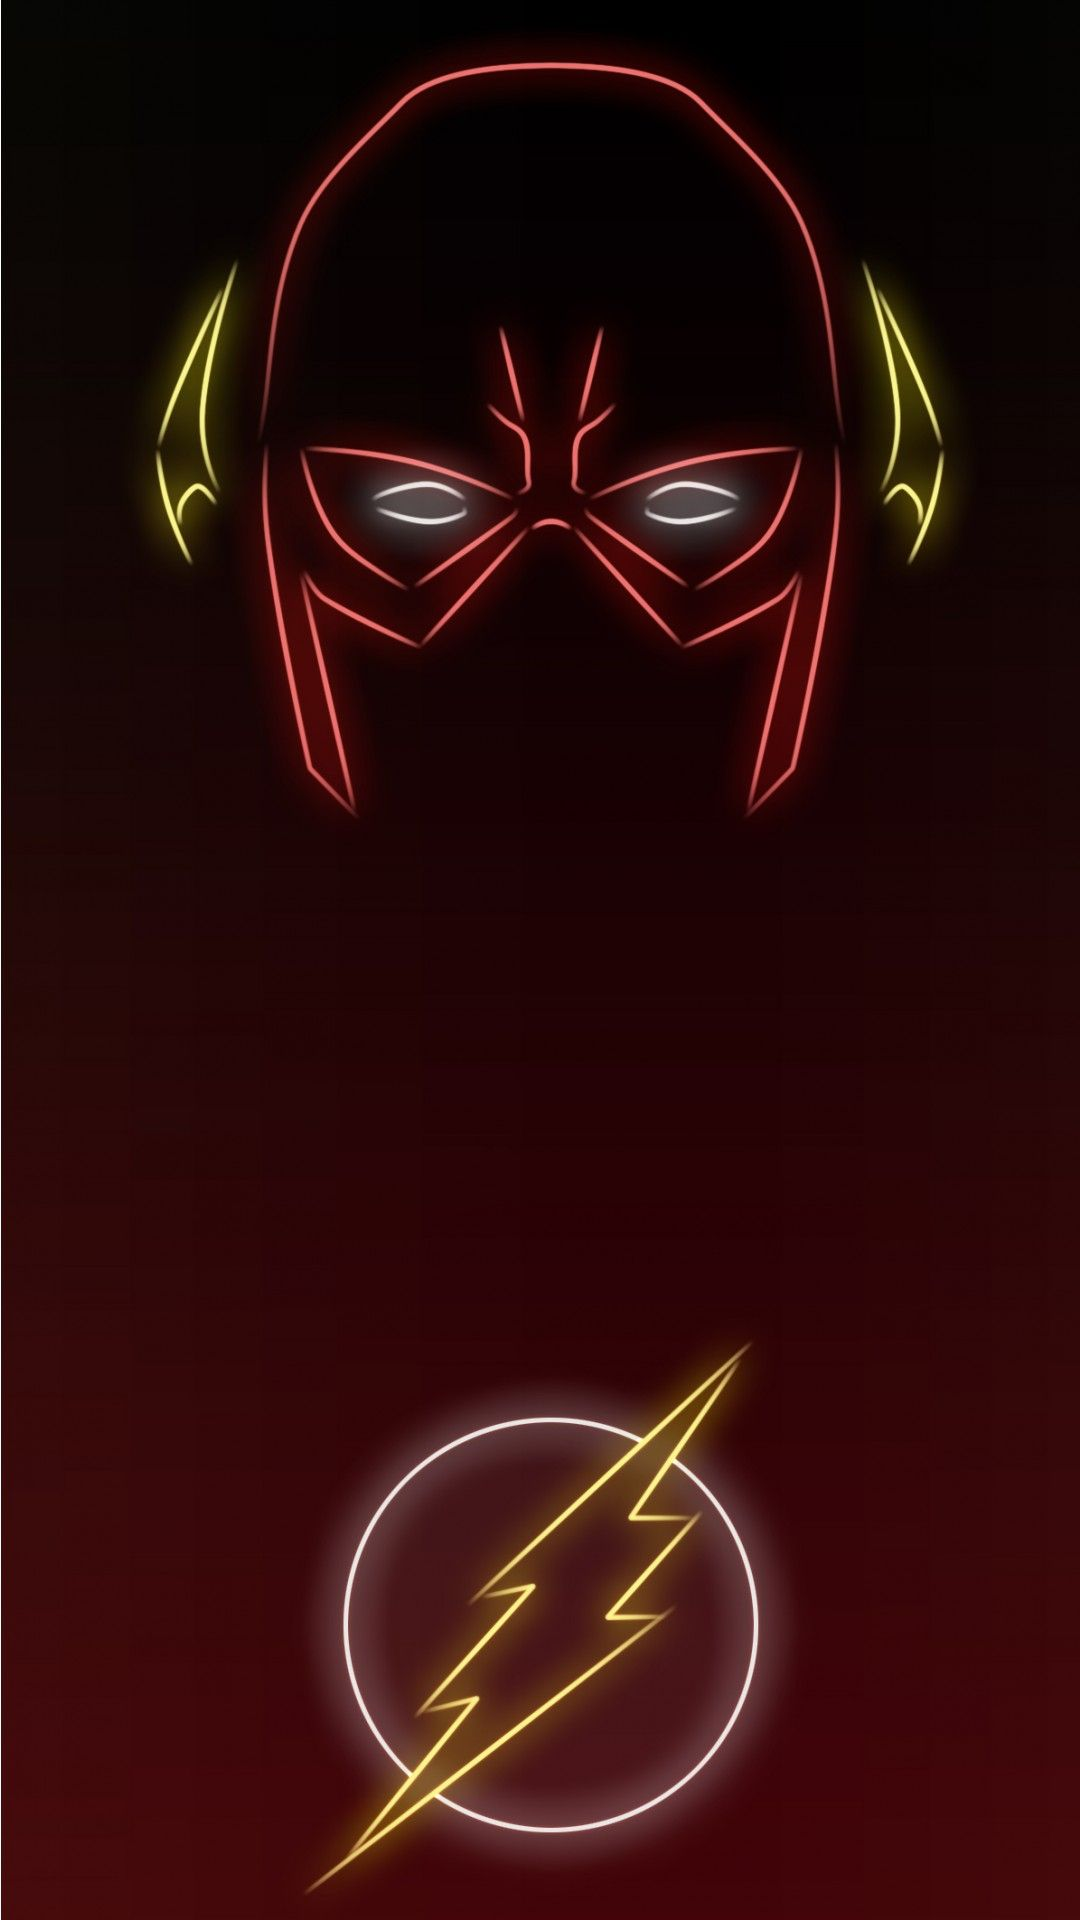 Neon Light The Flash Wallpapers 1080 X 1920 Available For Free Download